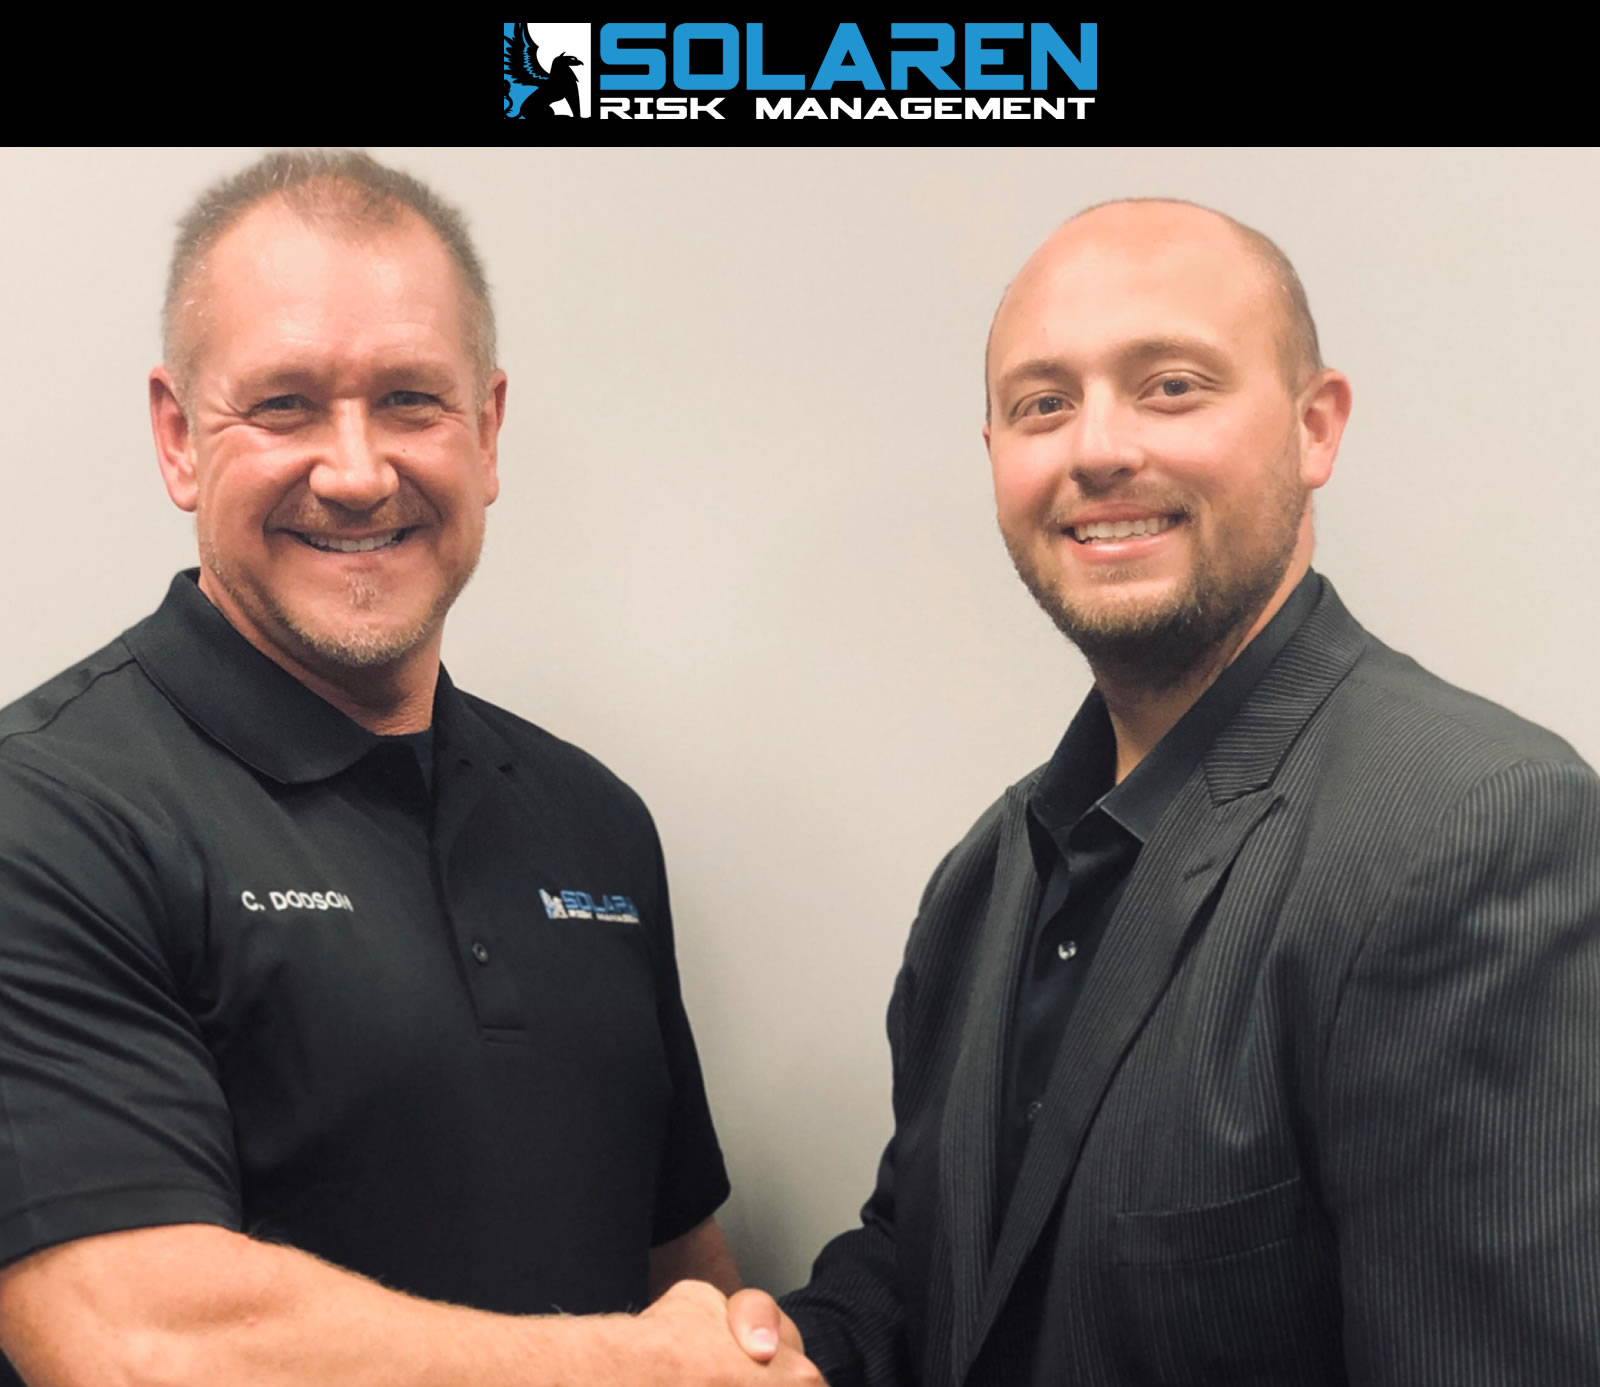 Solaren Managing Partner, Jack Byrd